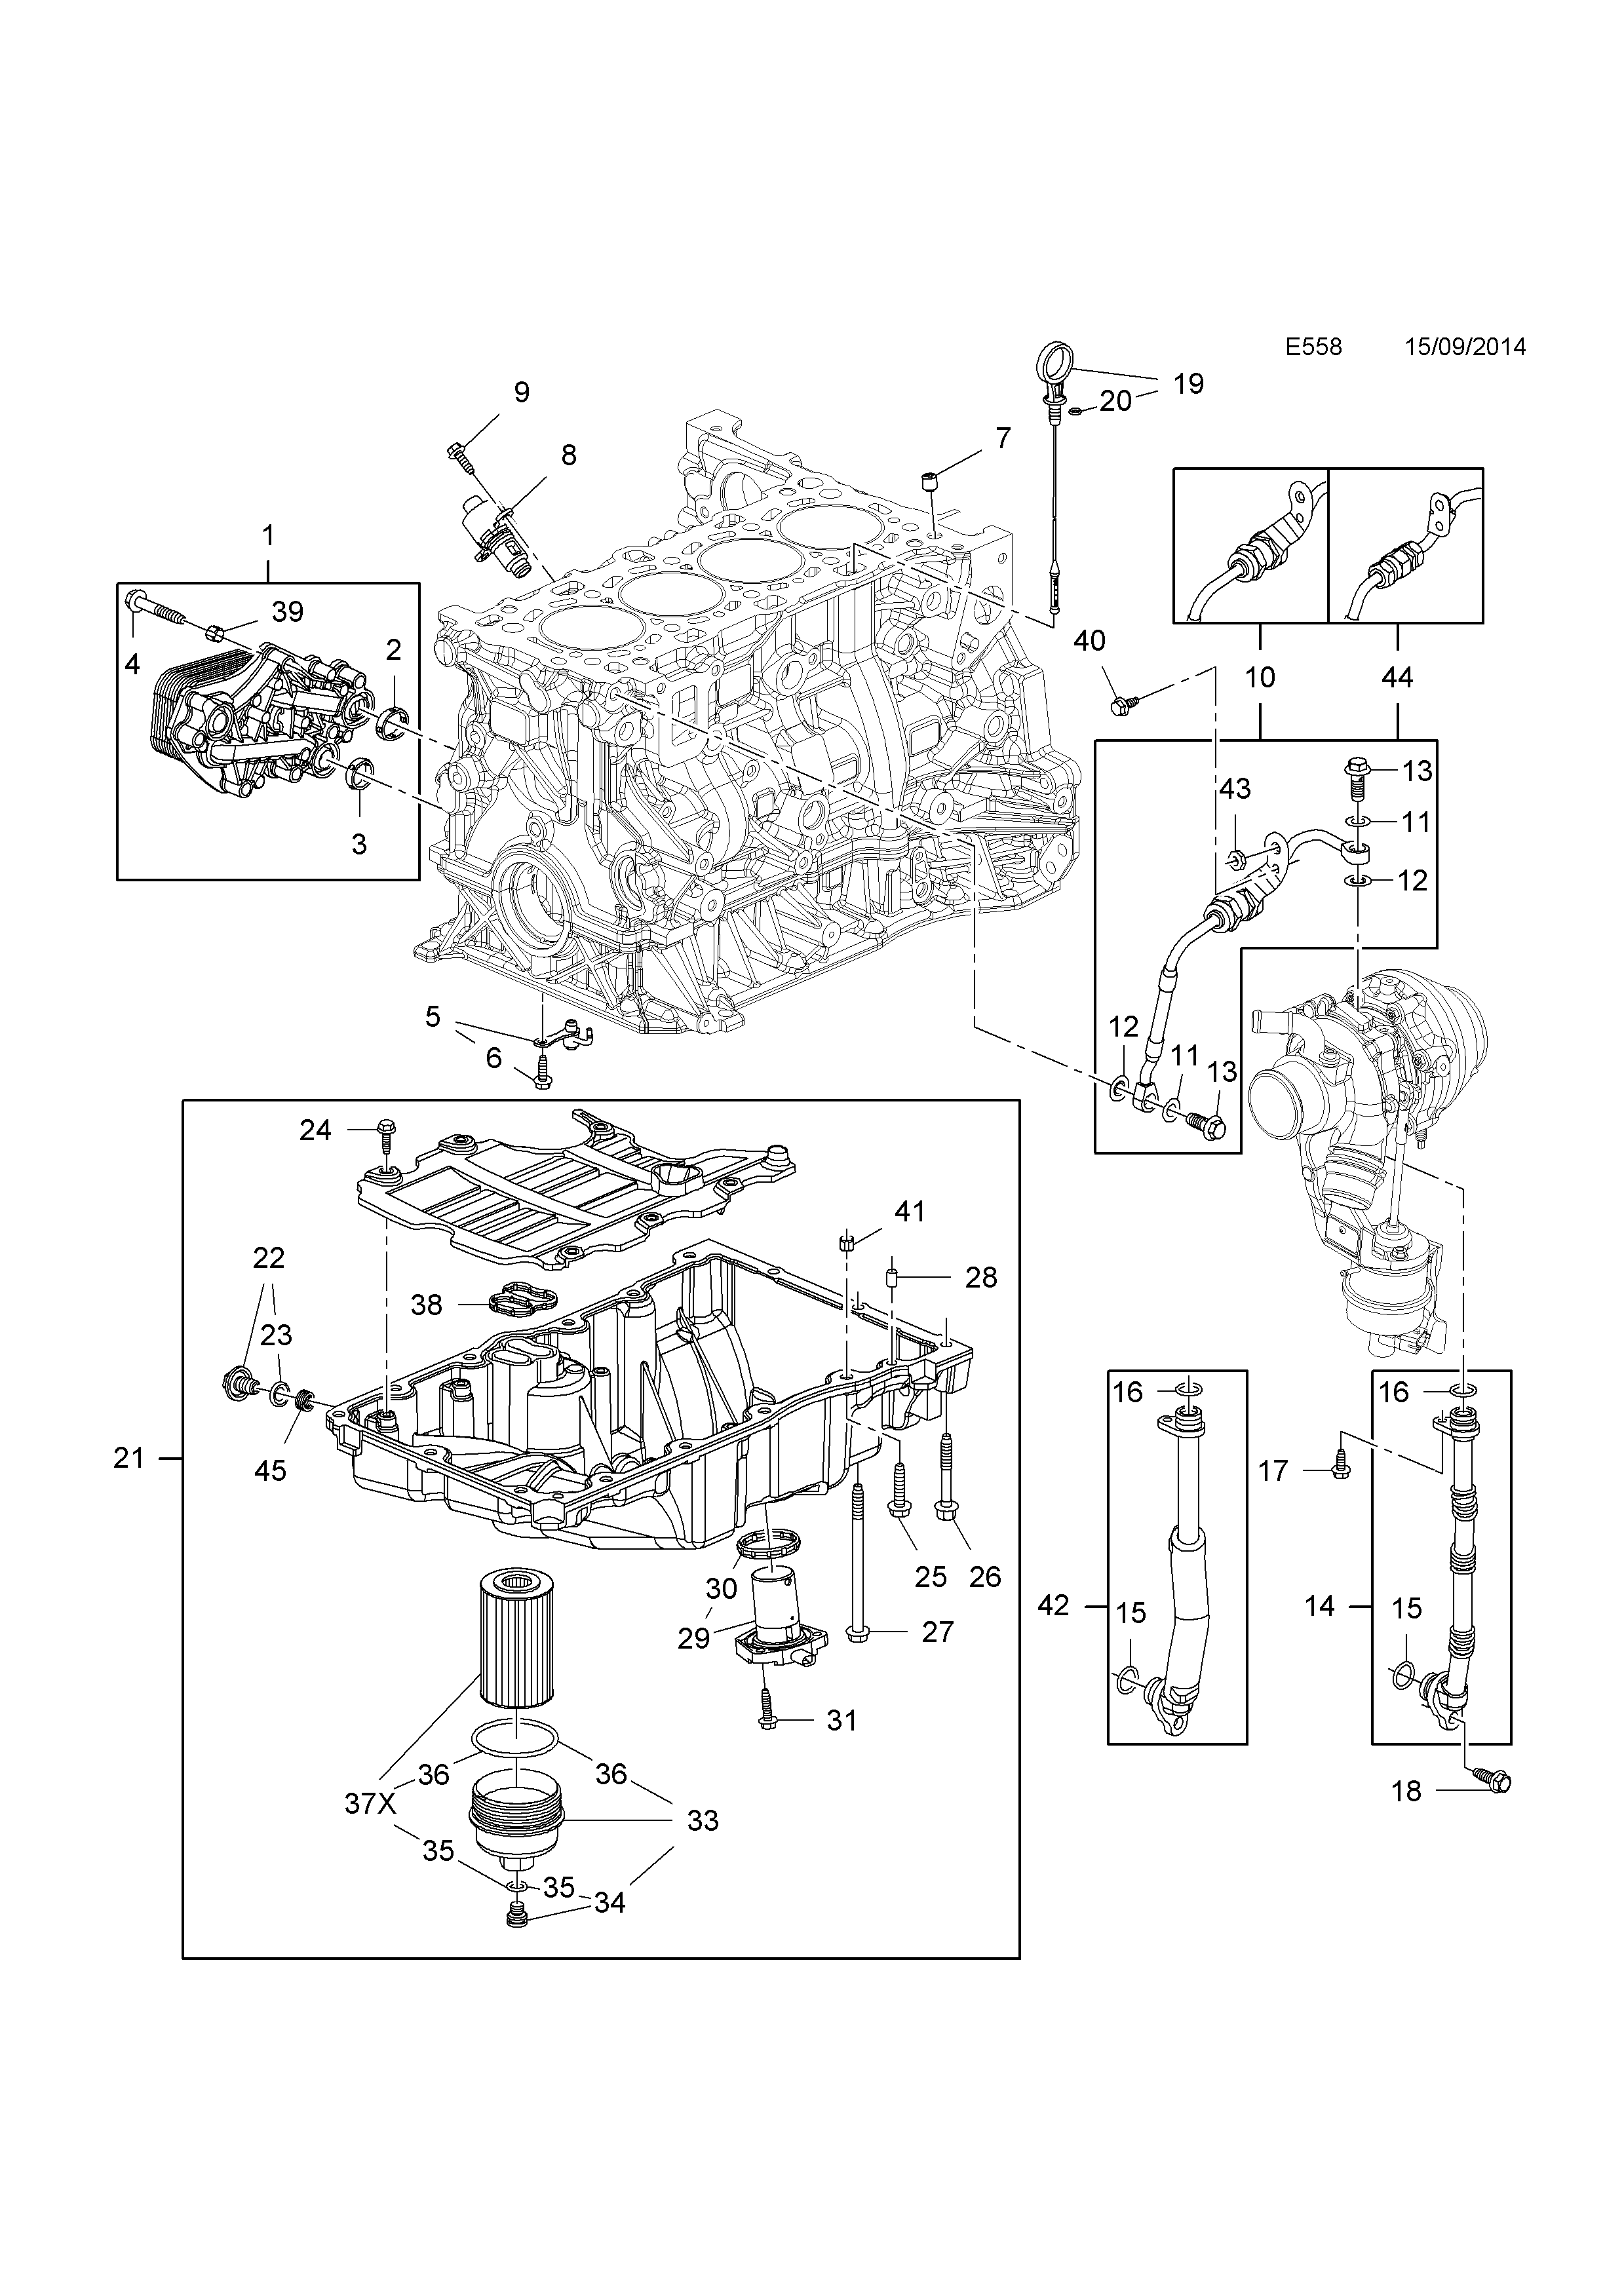 Opel zafira c 2012 e engine and clutch 4 b16dthlvl list of parts ccuart Image collections